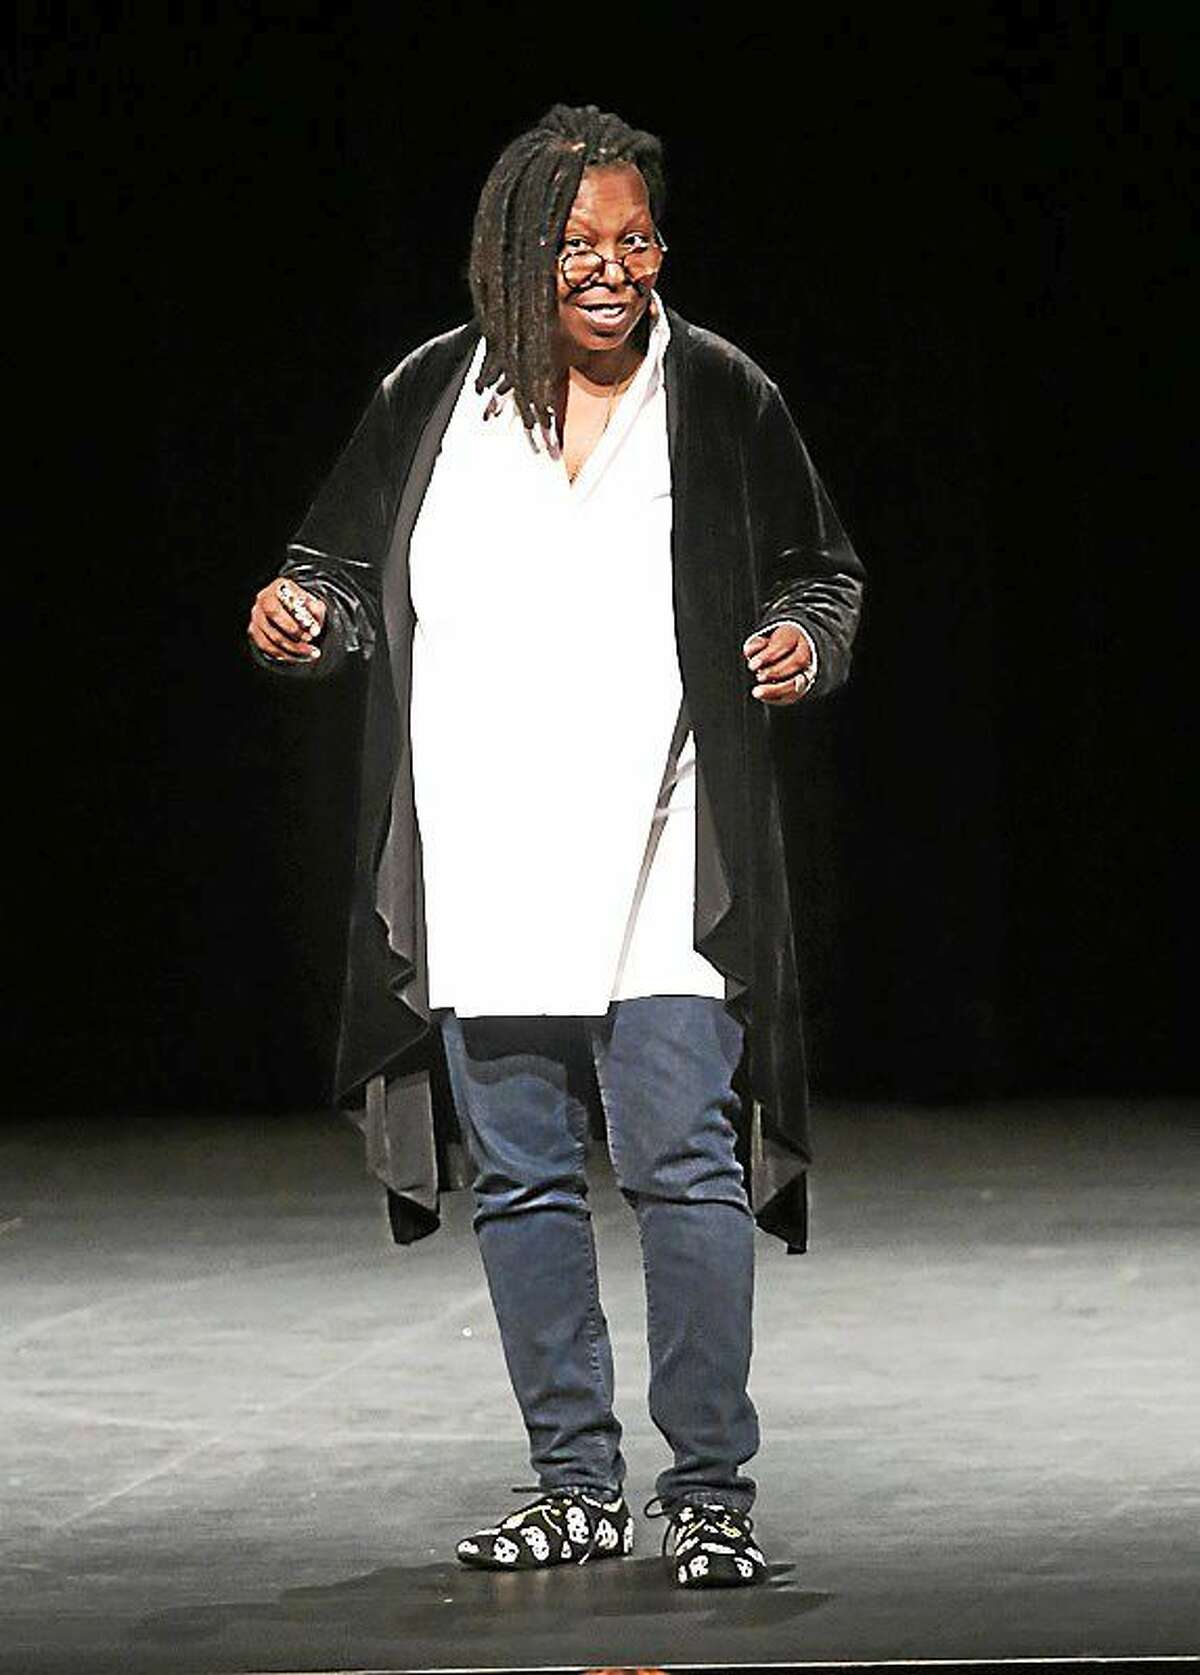 Comedian Whoopi Goldberg, born Caryn Elaine Johnson, is shown performing on stage during her live appearance at the Grand Theater in the Foxwoods Resort & Casino on Oct. 10.